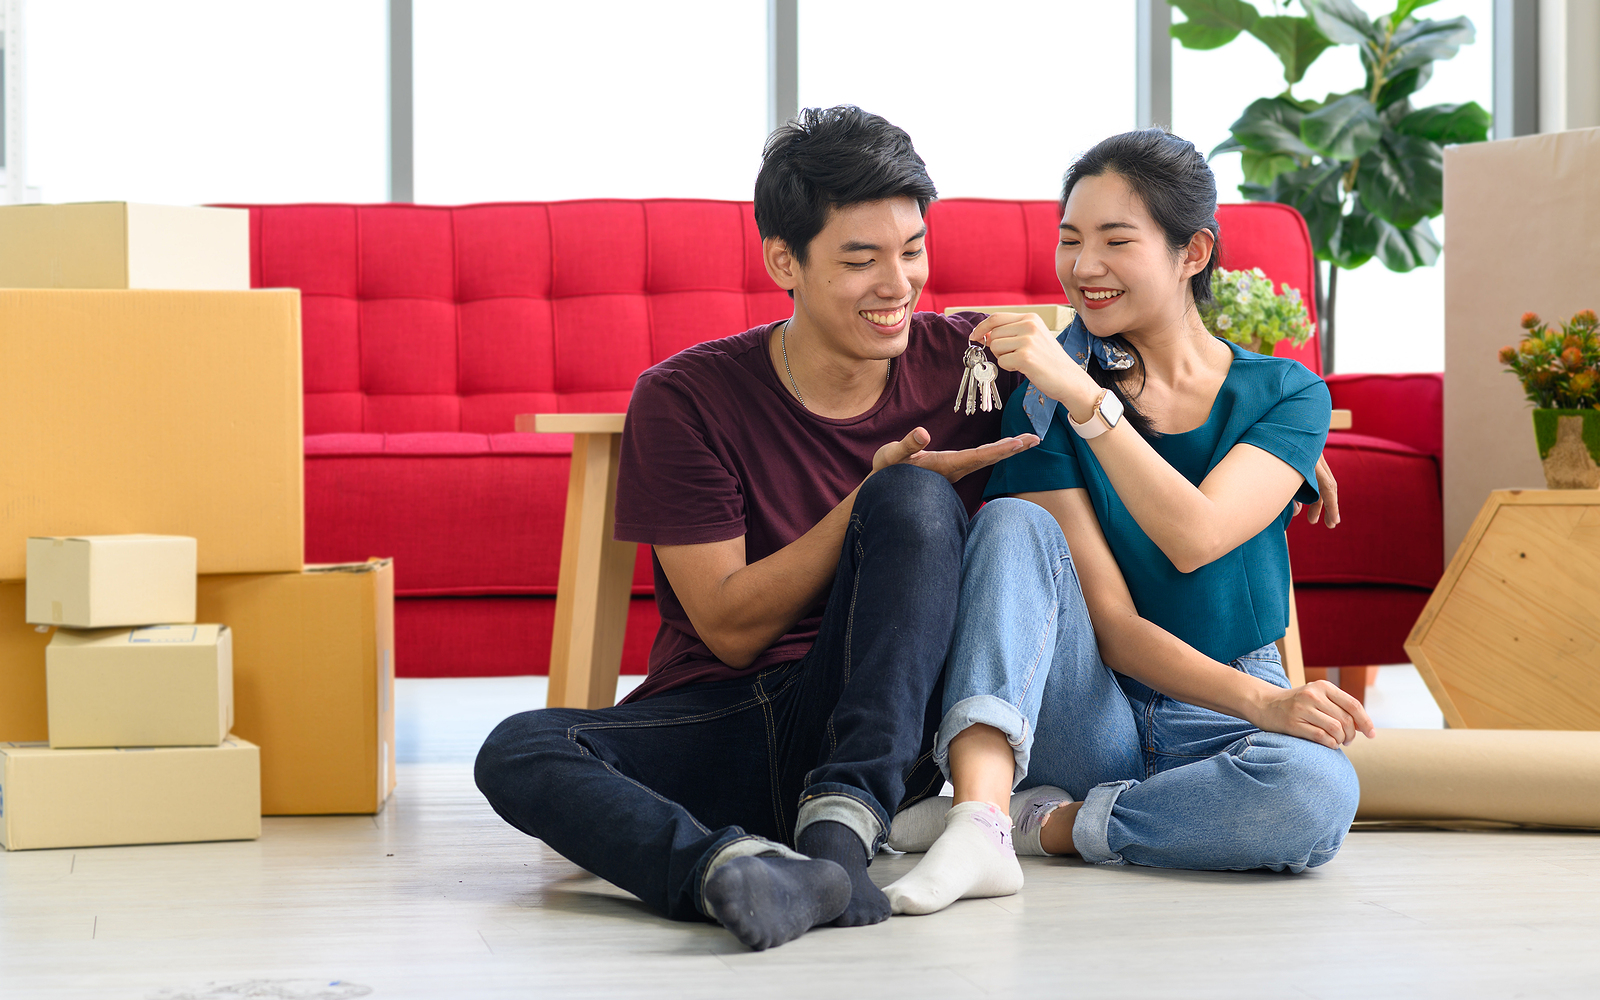 6 Investment Property Tips for Entrepreneurial Young Couples